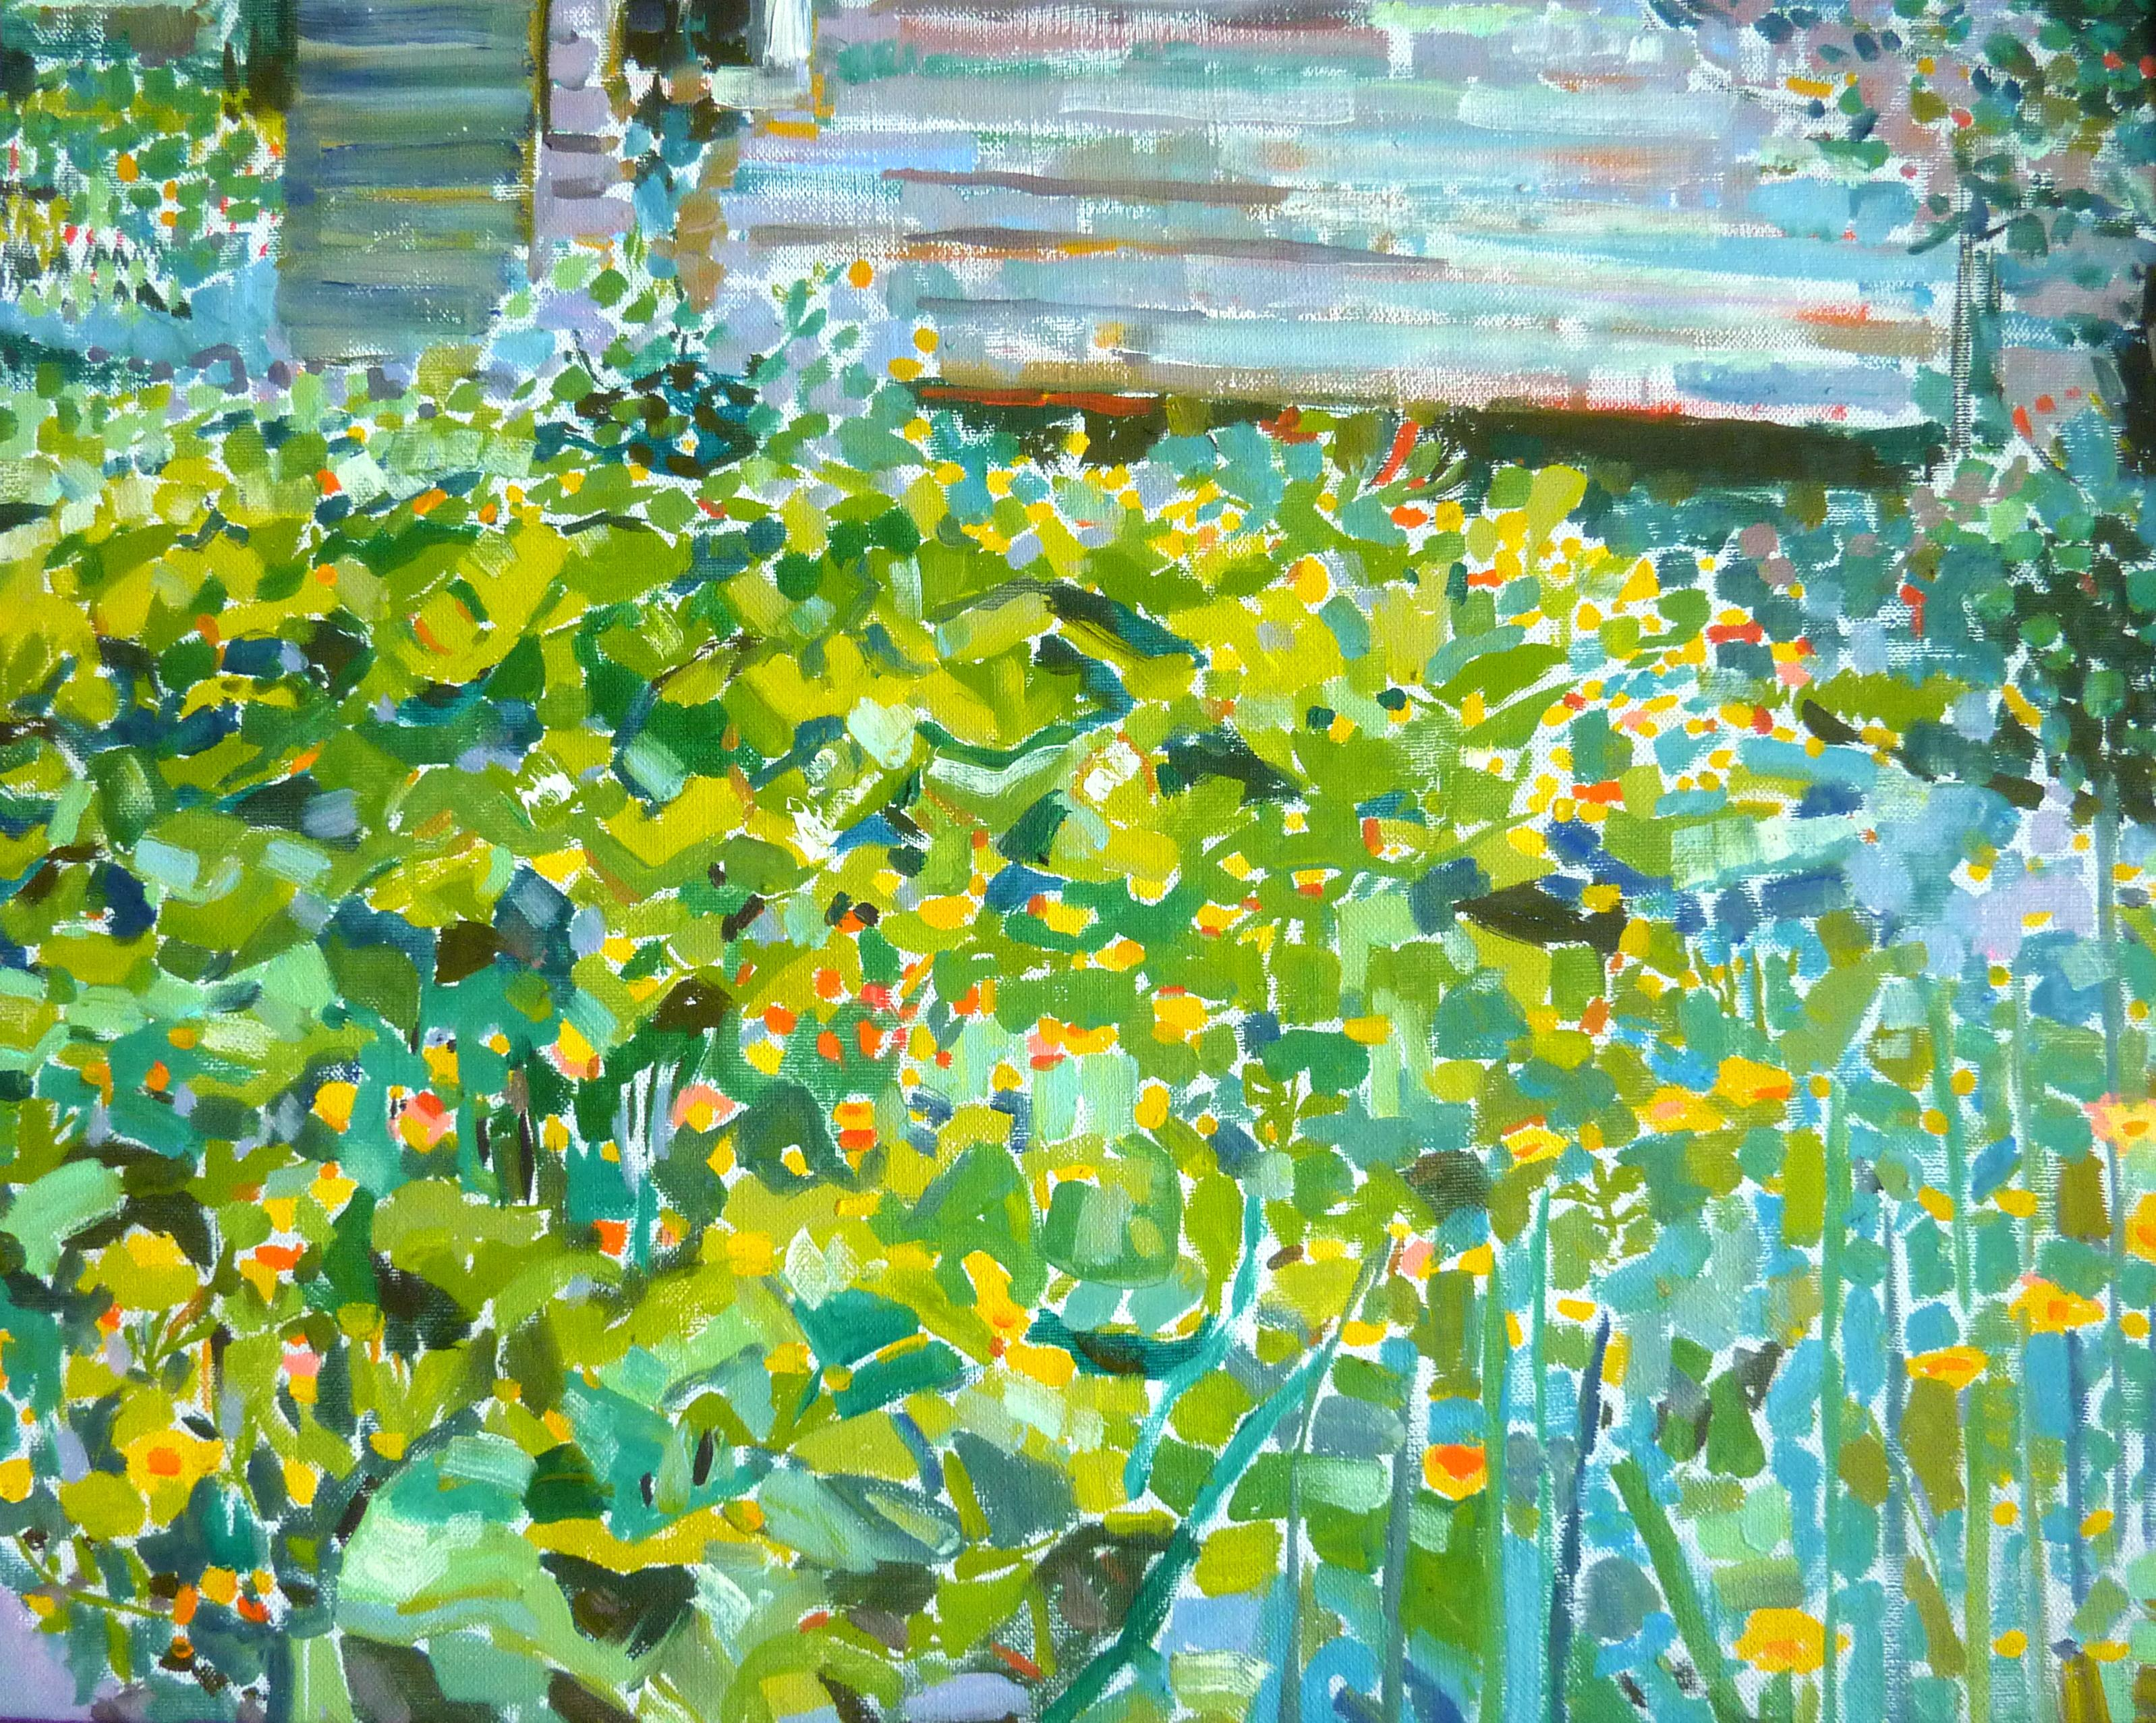 Gardening View - 21st Century Contemporary Pointillism Nature Oil Painting